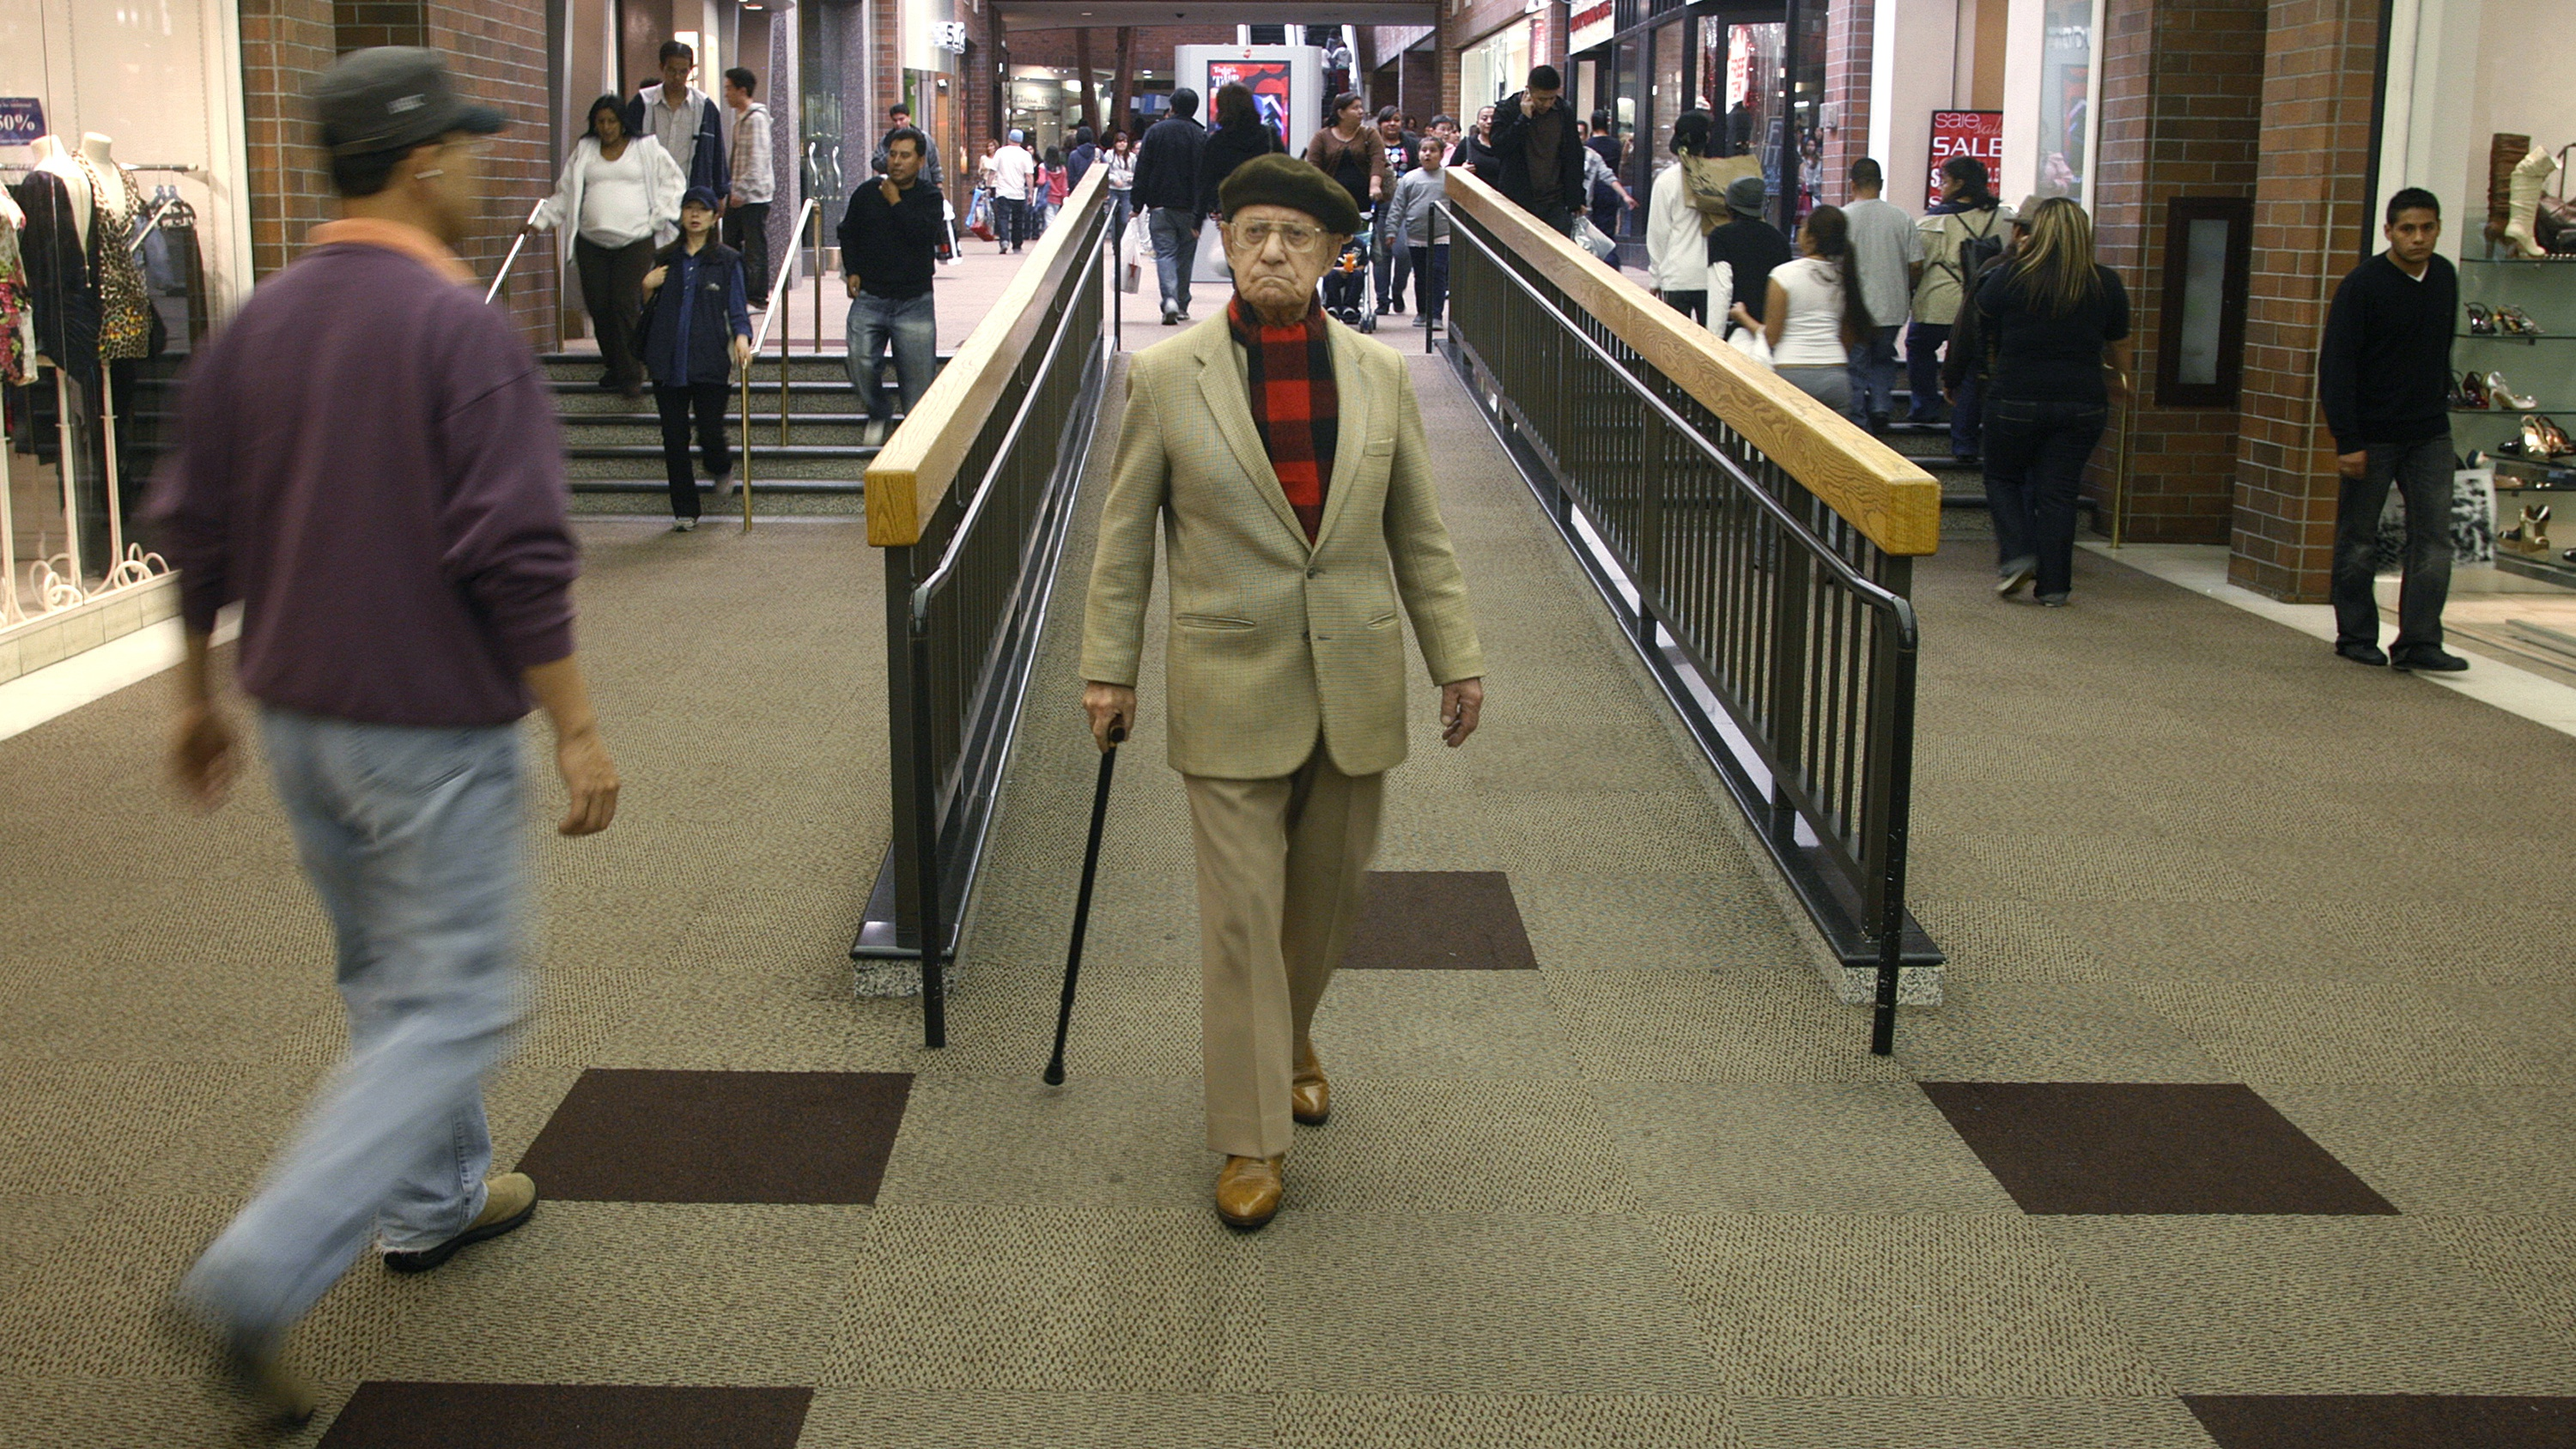 An elderly man walks with his cane amid shoppers at the Glendale Galleria shopping mall on Black Friday in Glendale, California November 28, 2008.